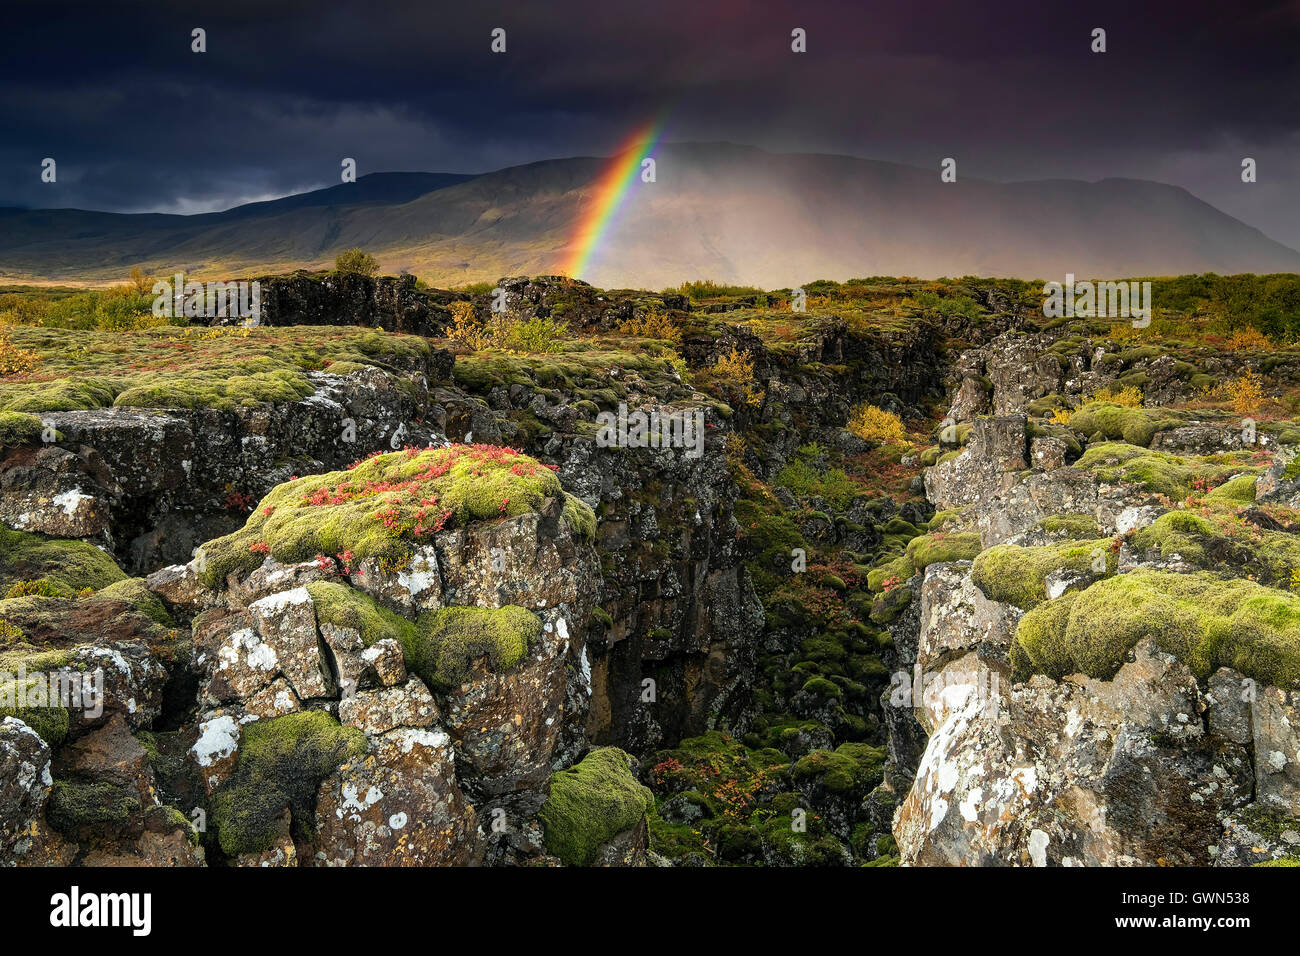 Rainbow and Rainstorm over Tectonic Plate Fissure, Thingvellir National Park, South Western Iceland - Stock Image